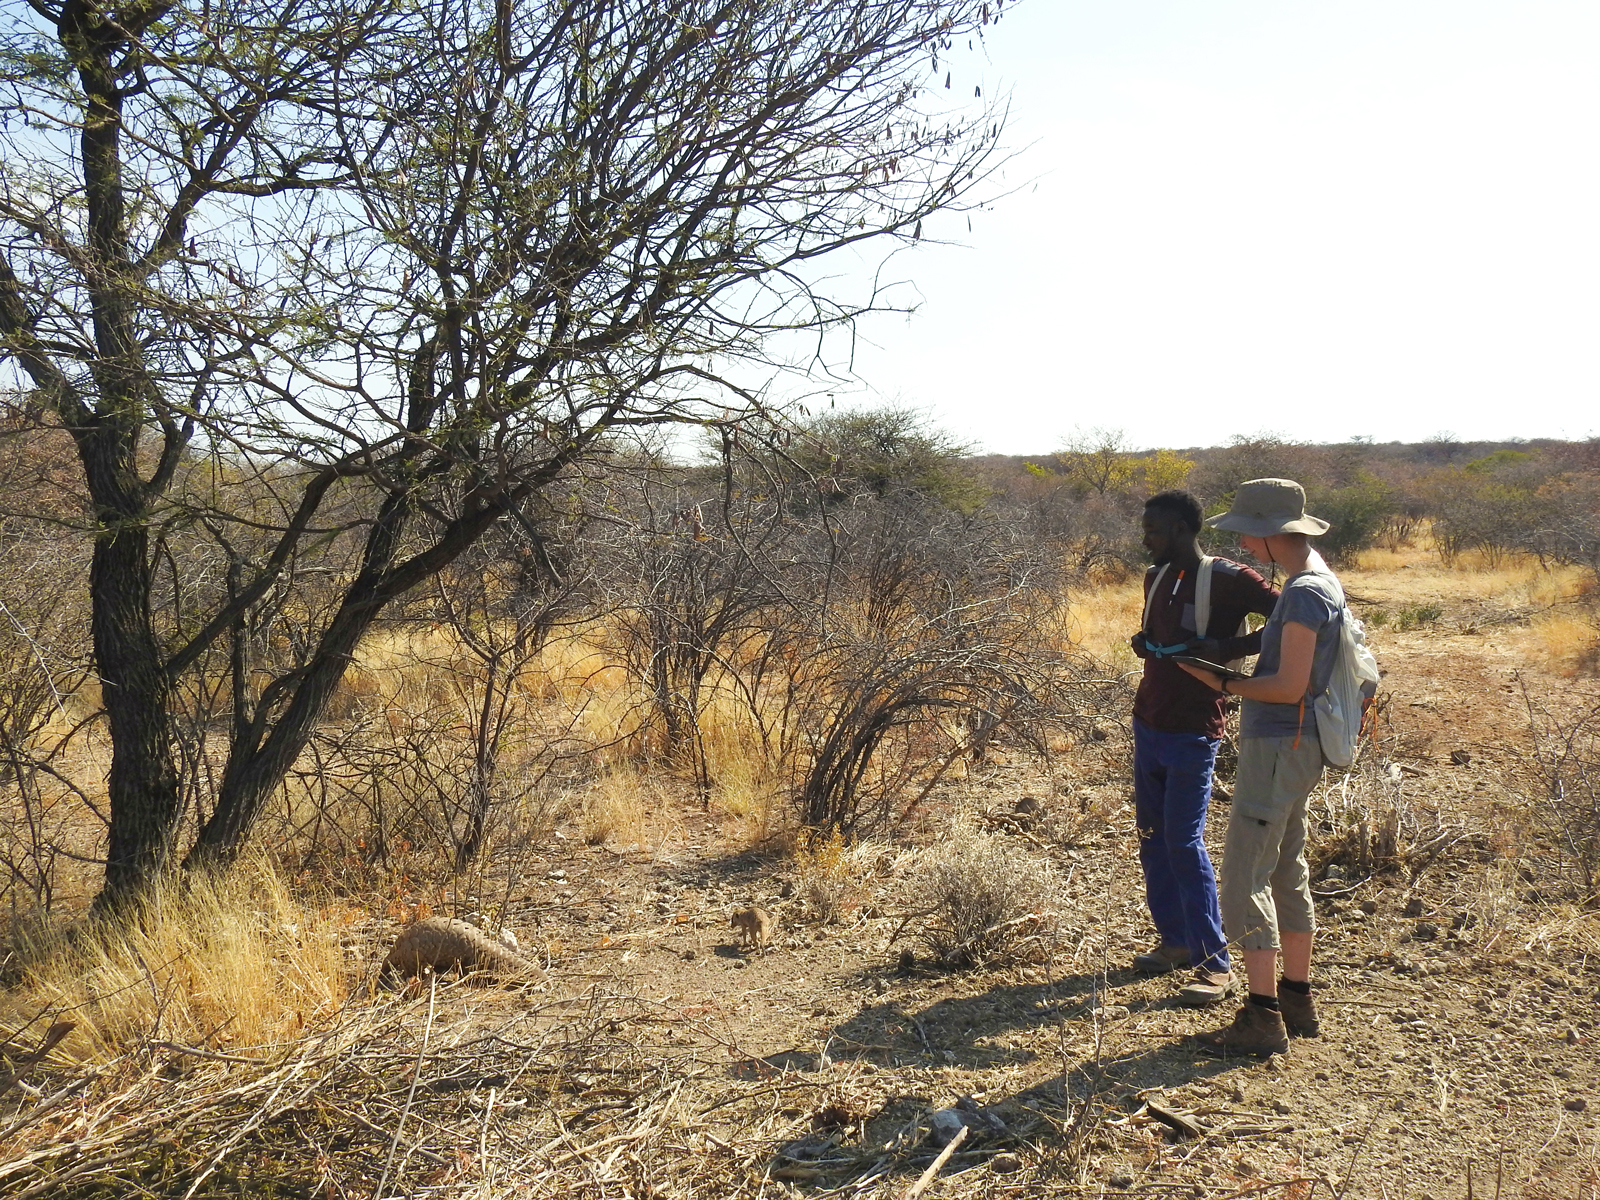 Two people watchign a pangolin forage in Namibia